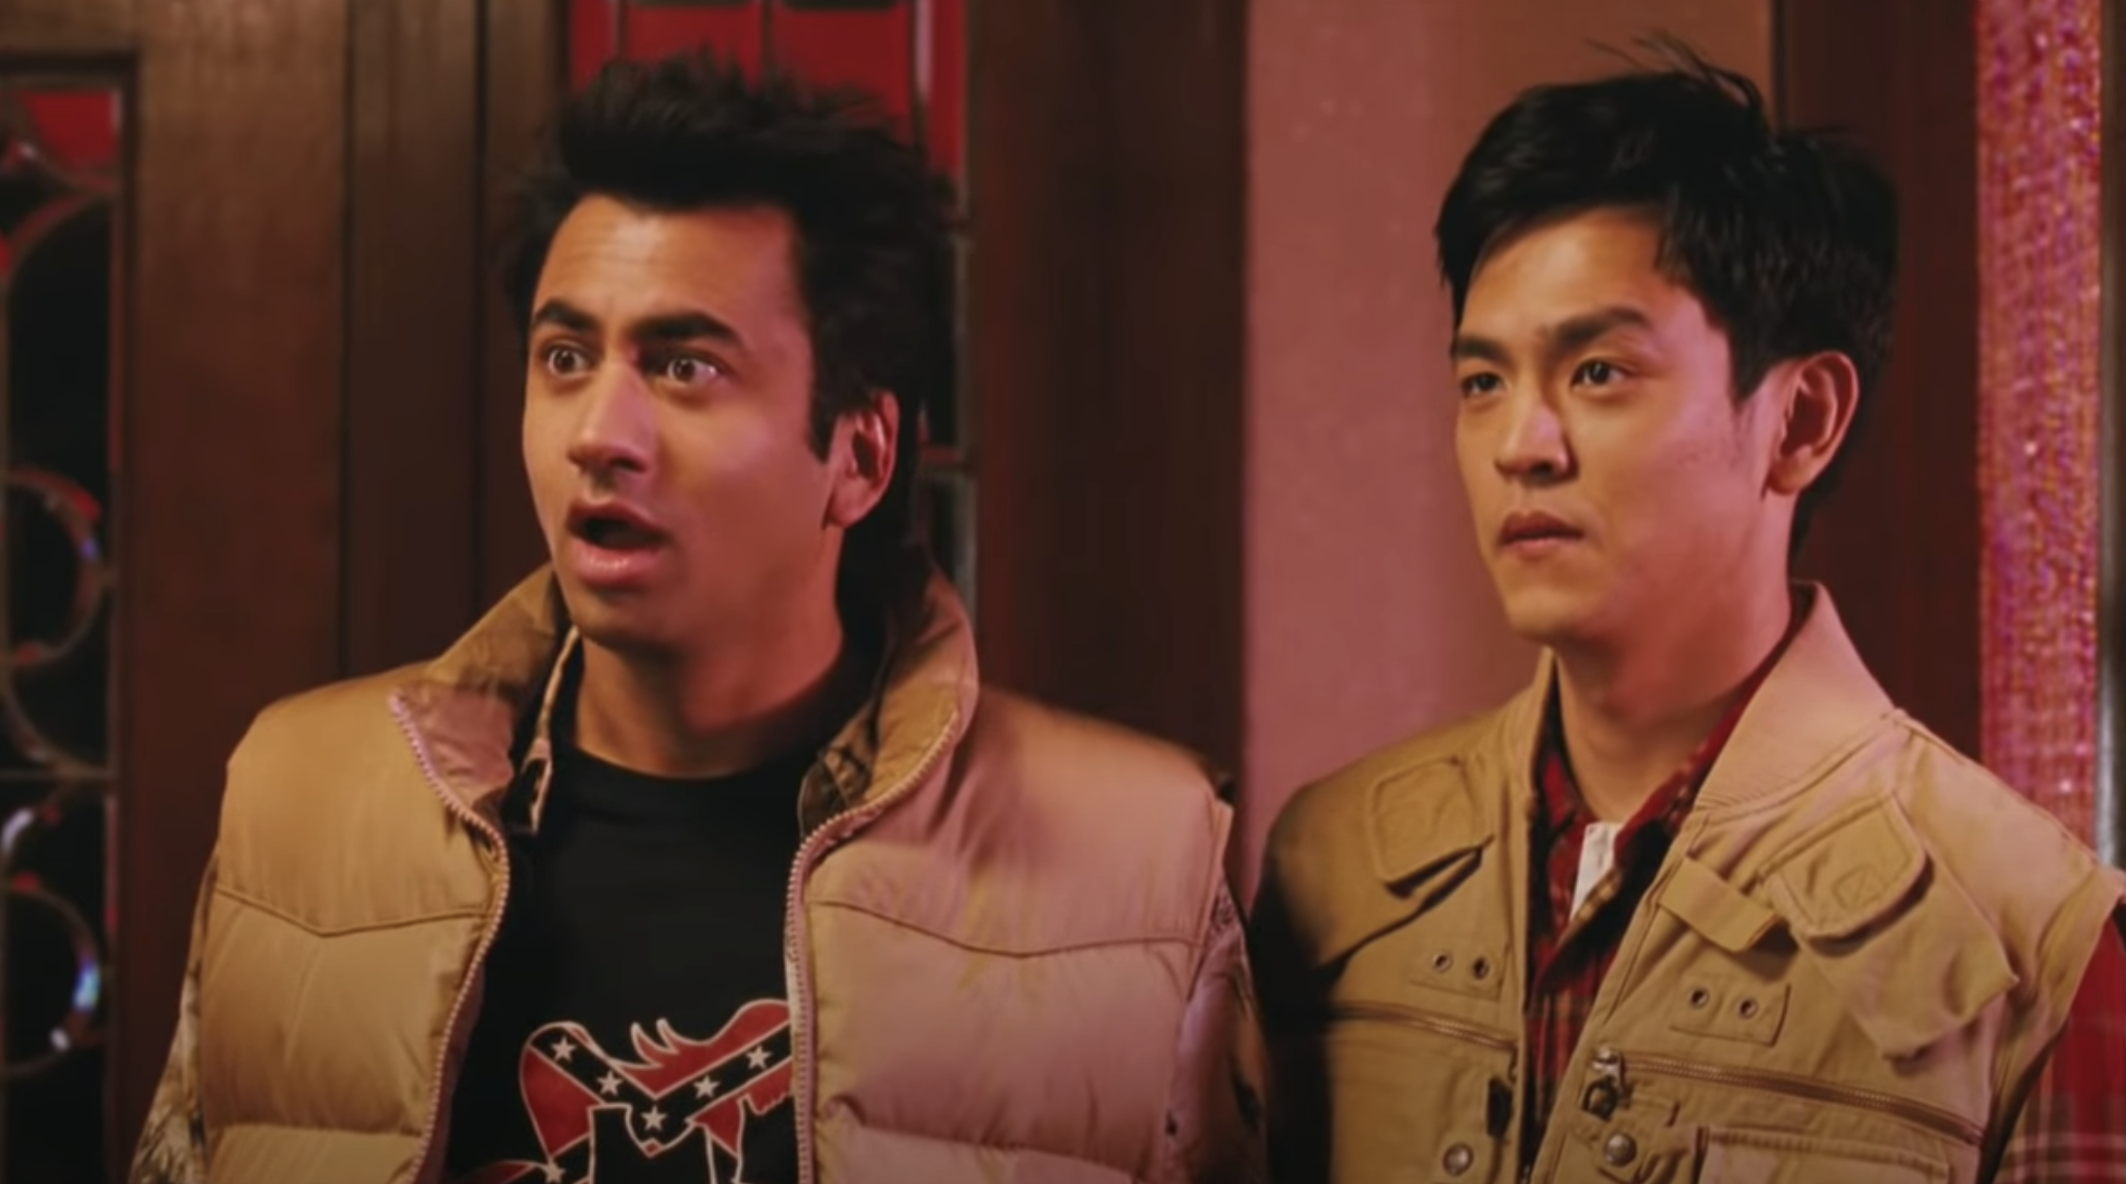 Harold and Kumar arrive at someone's house